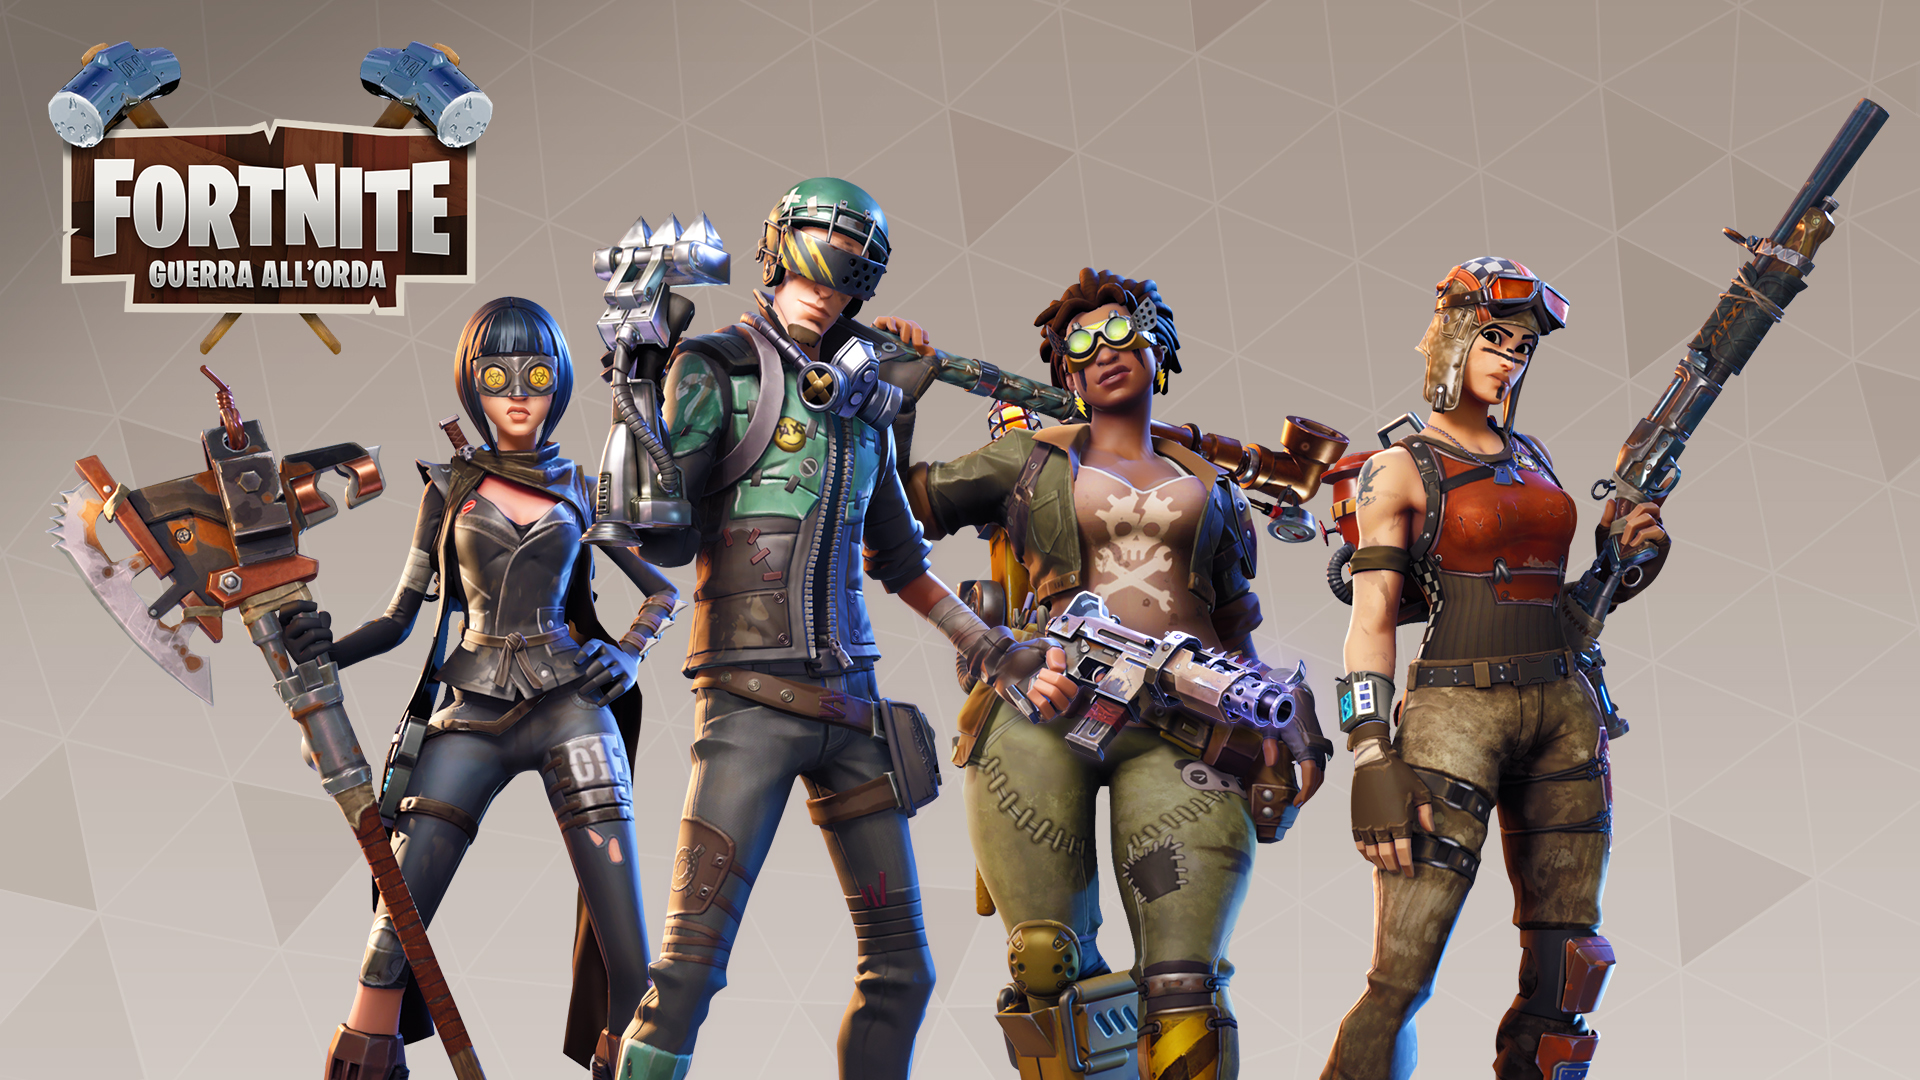 Fortnite%2Fblog%2Fea-1-7-patch-notes%2FIT-HB-Heroes-1920x1080-f4abfb034327e5742463032e7010605a182e3498